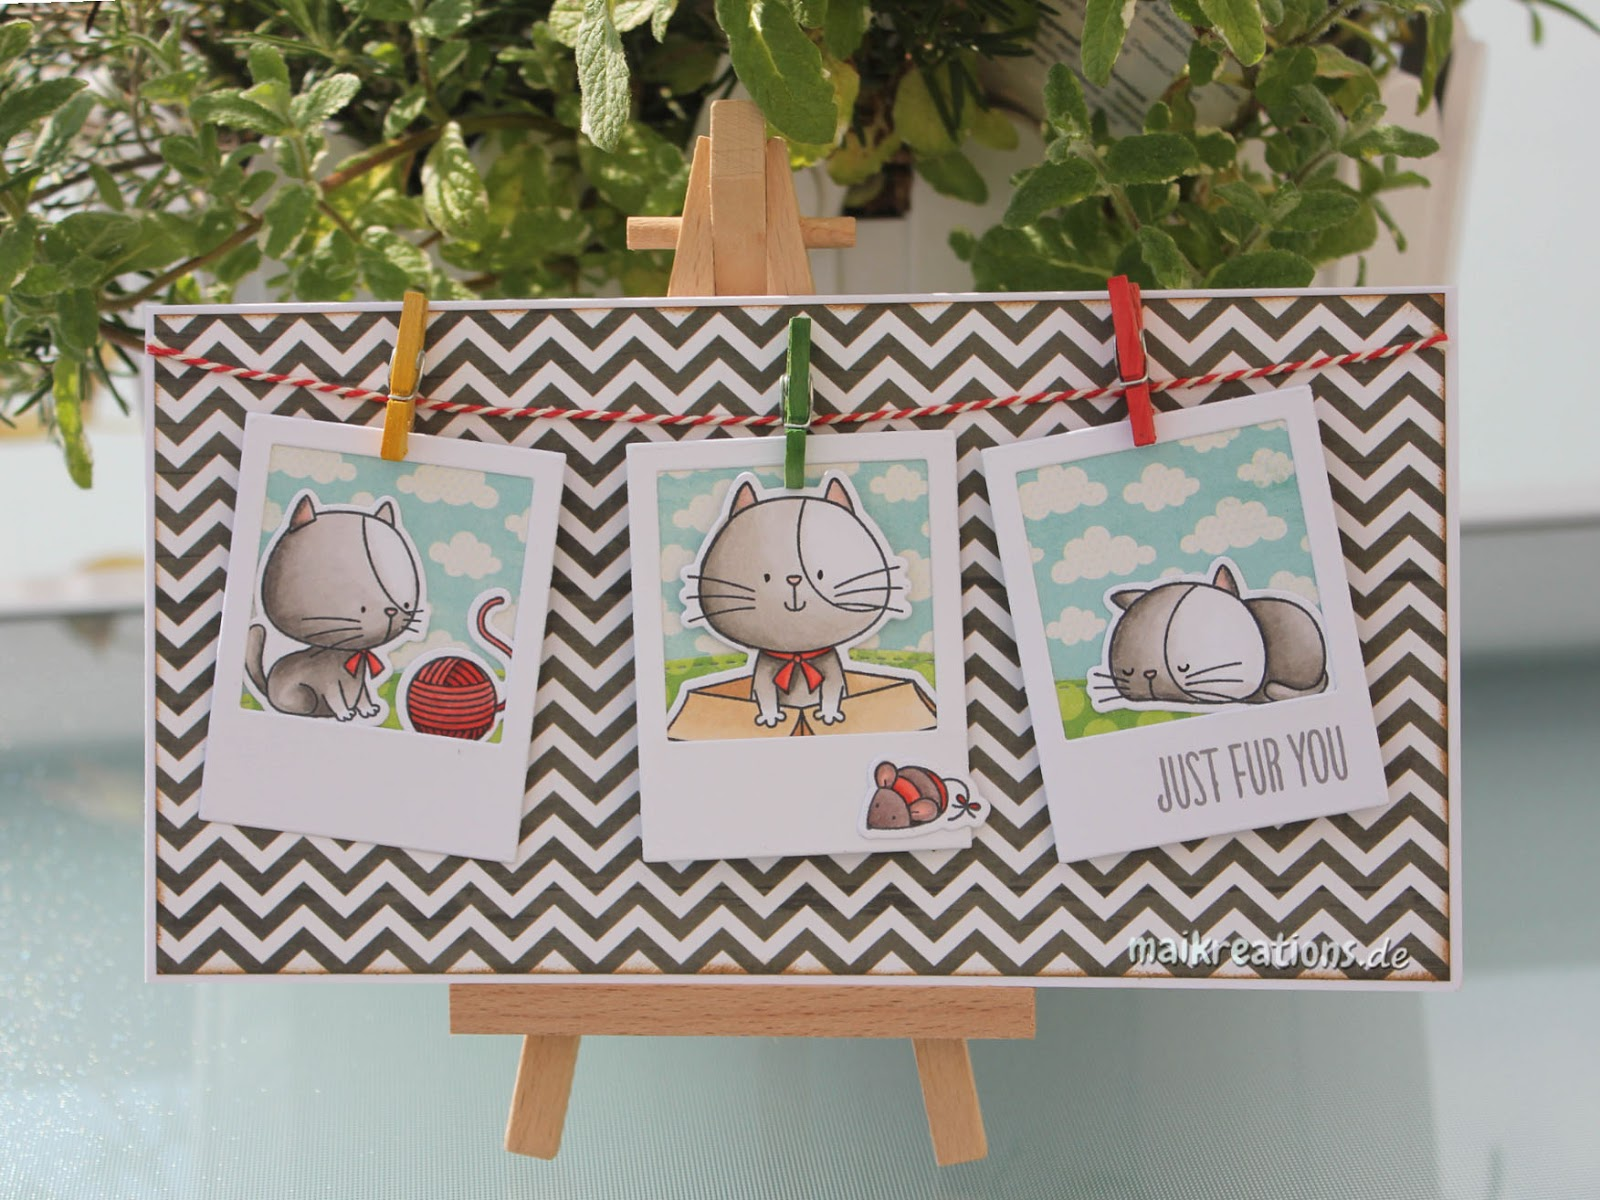 To Have Fun And Craft O I Already Started On The Crafting Part Made A Card Using Cute Knead You Stamp Set By MFT